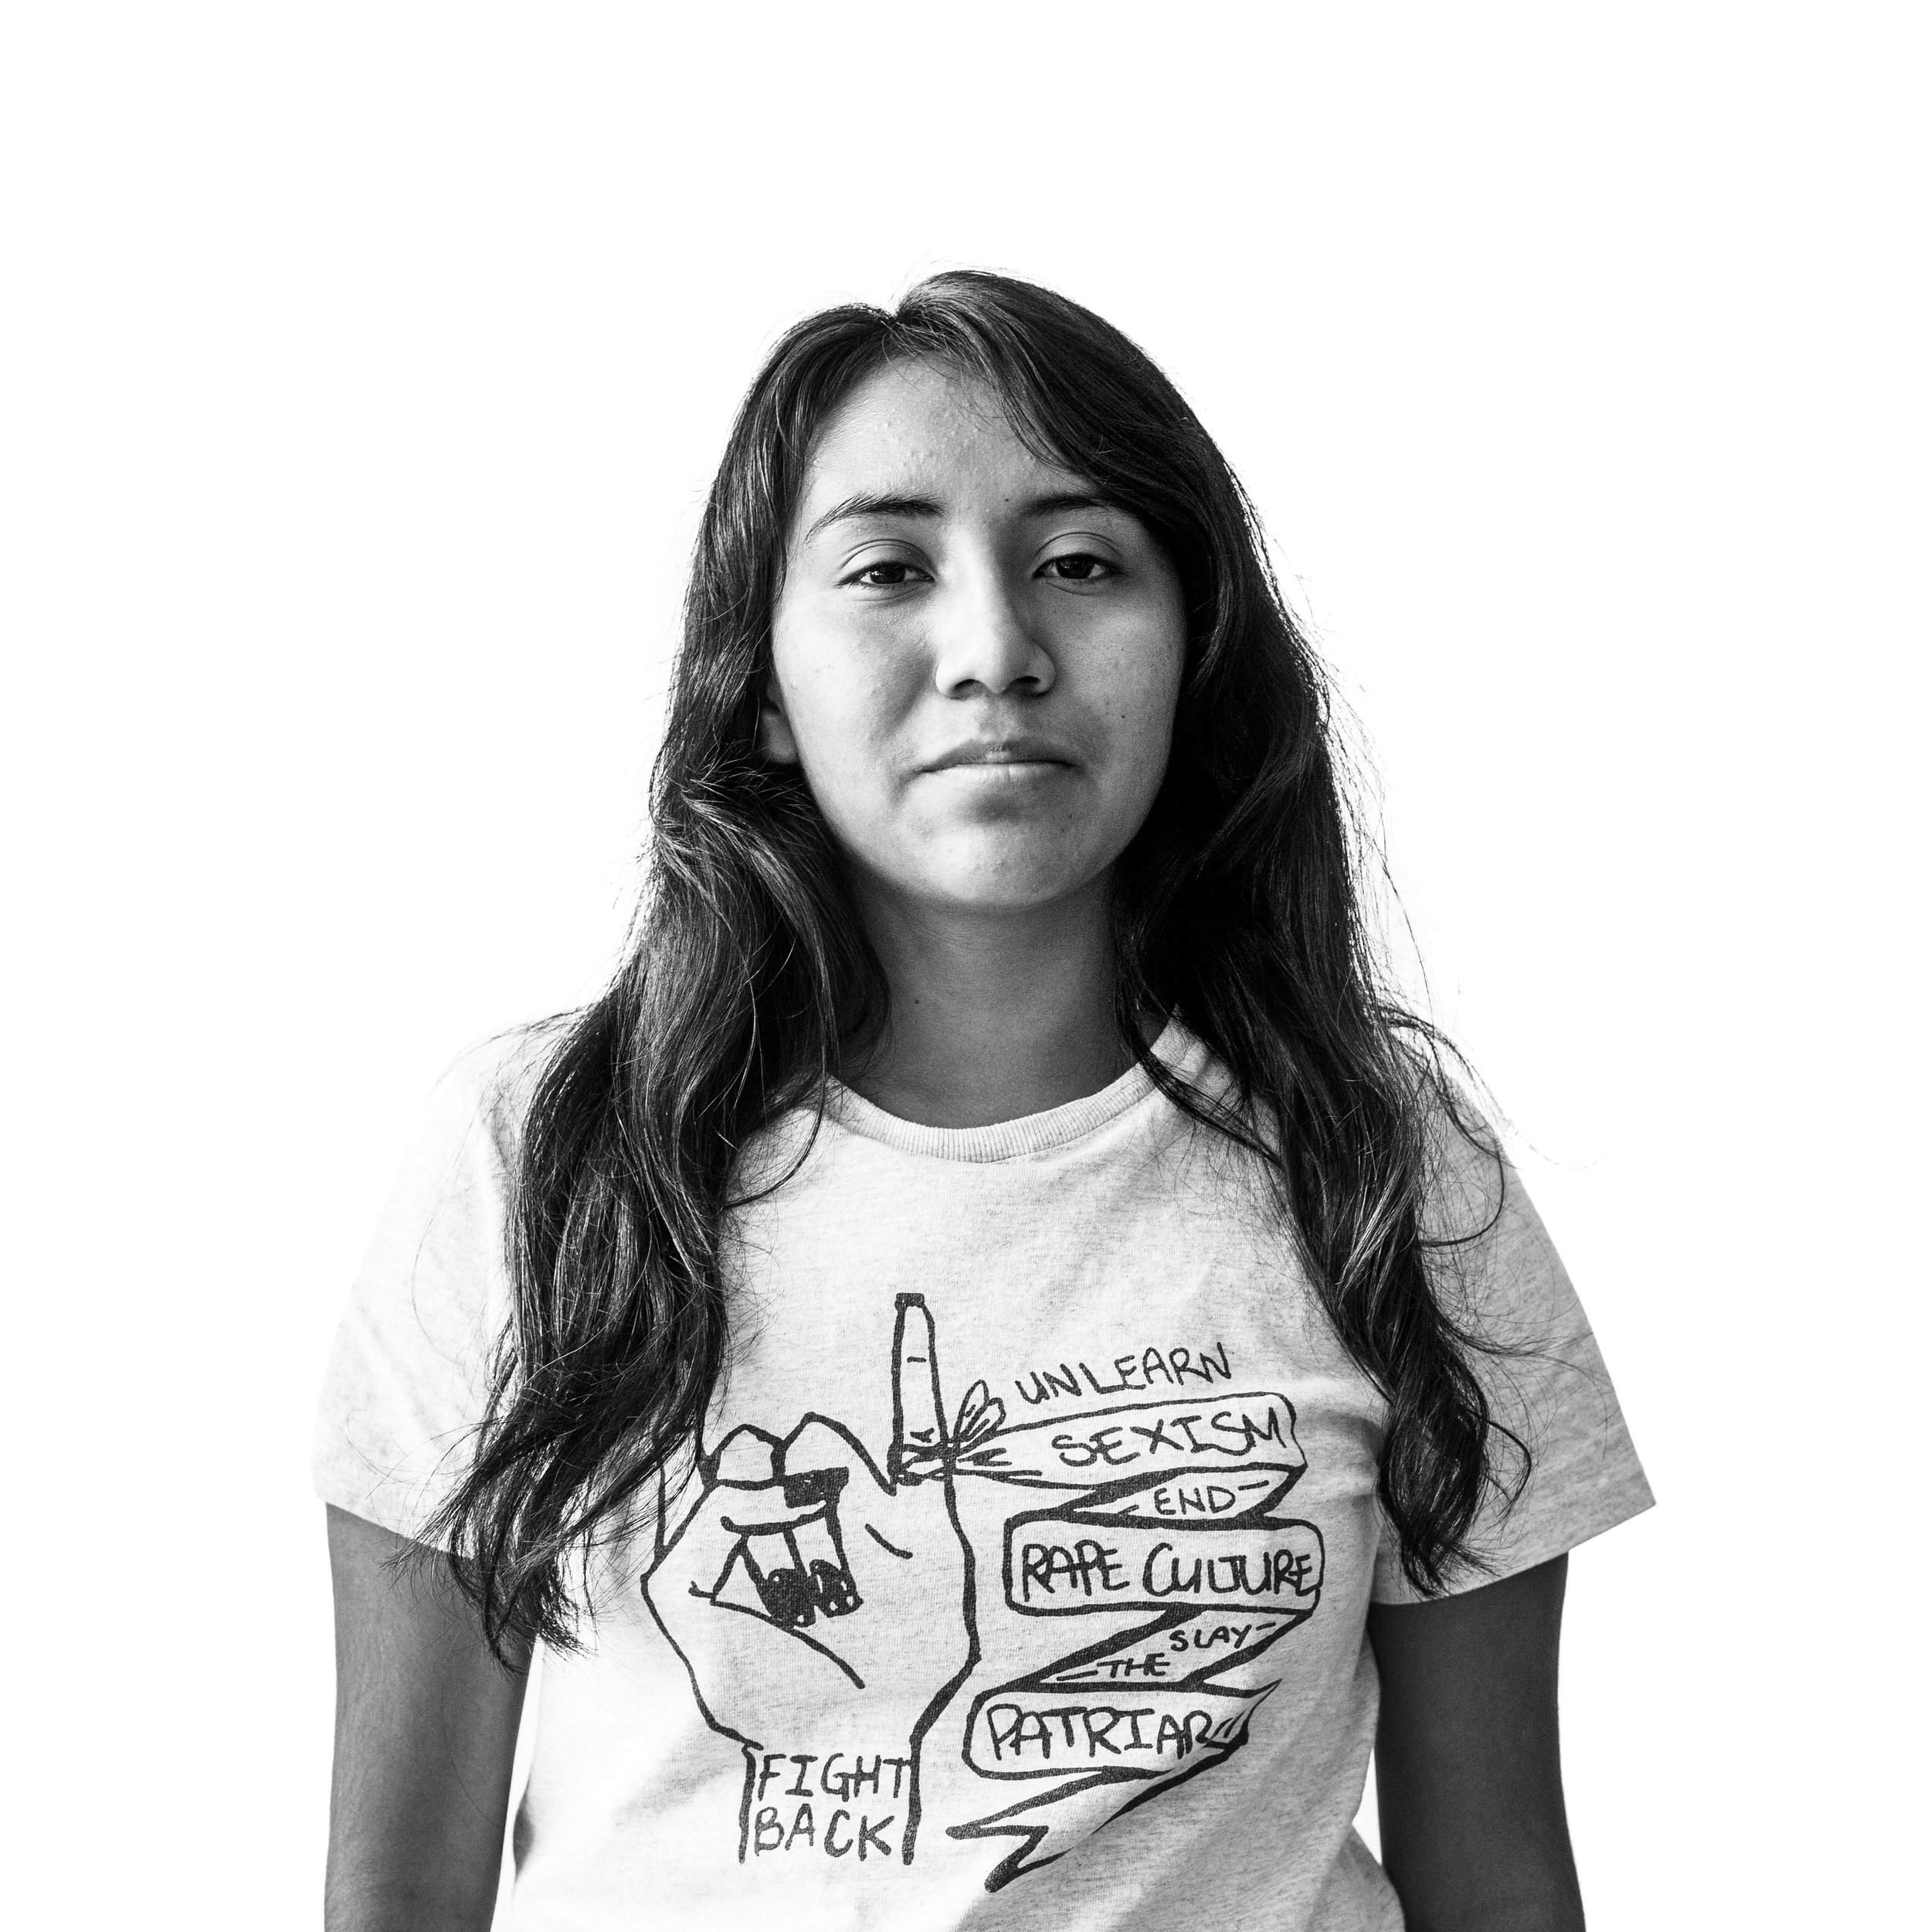 The Faces of Daca_10.jpg